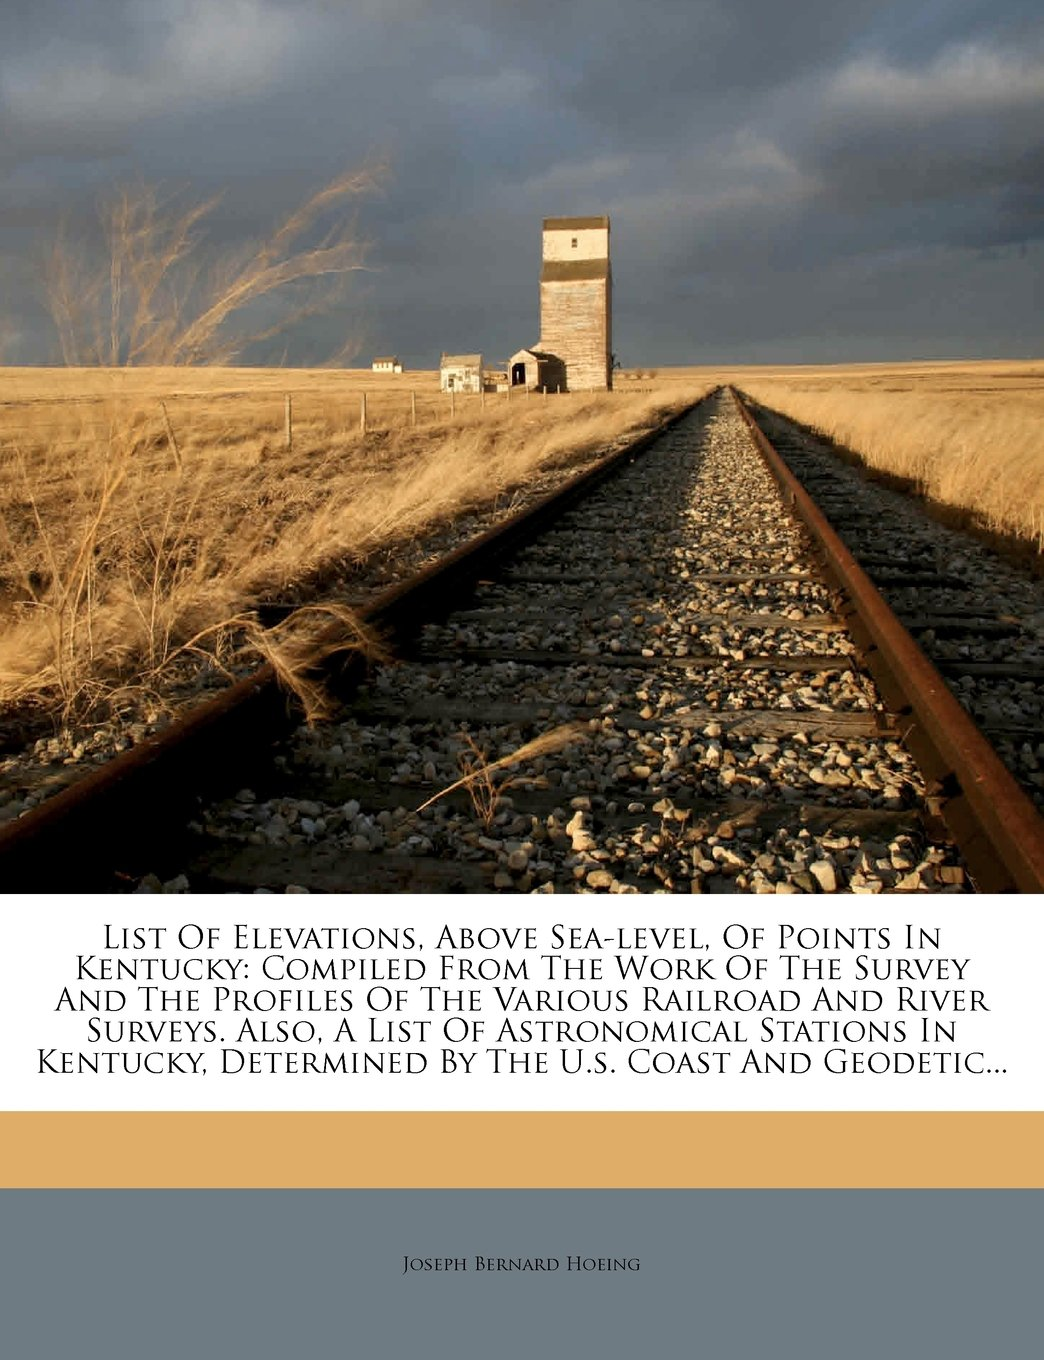 Download List of Elevations, Above Sea-Level, of Points in Kentucky: Compiled from the Work of the Survey and the Profiles of the Various Railroad and River Su ebook